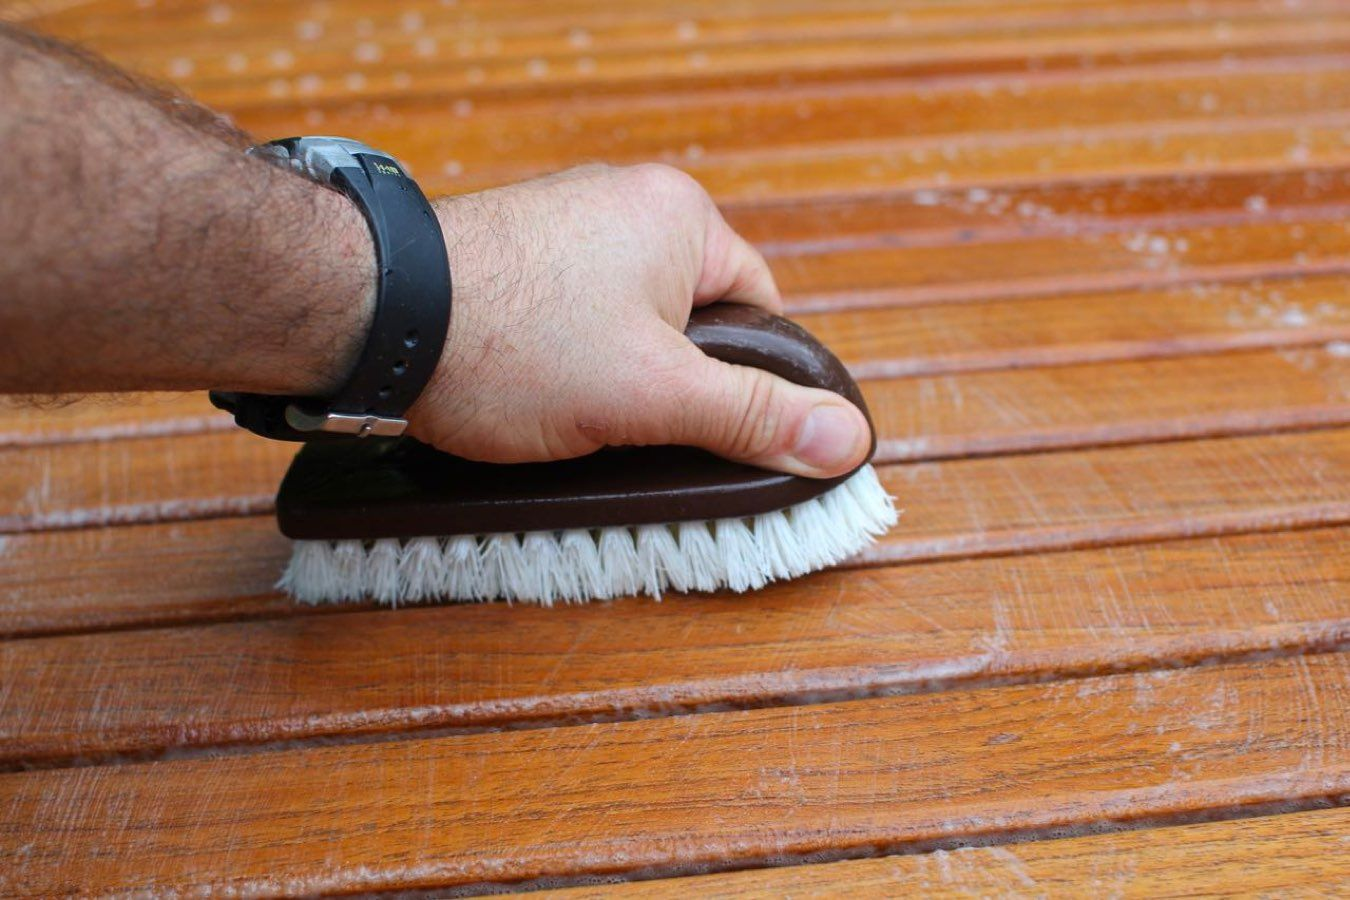 Showing how to clean and care for best wood for outdoor furniture